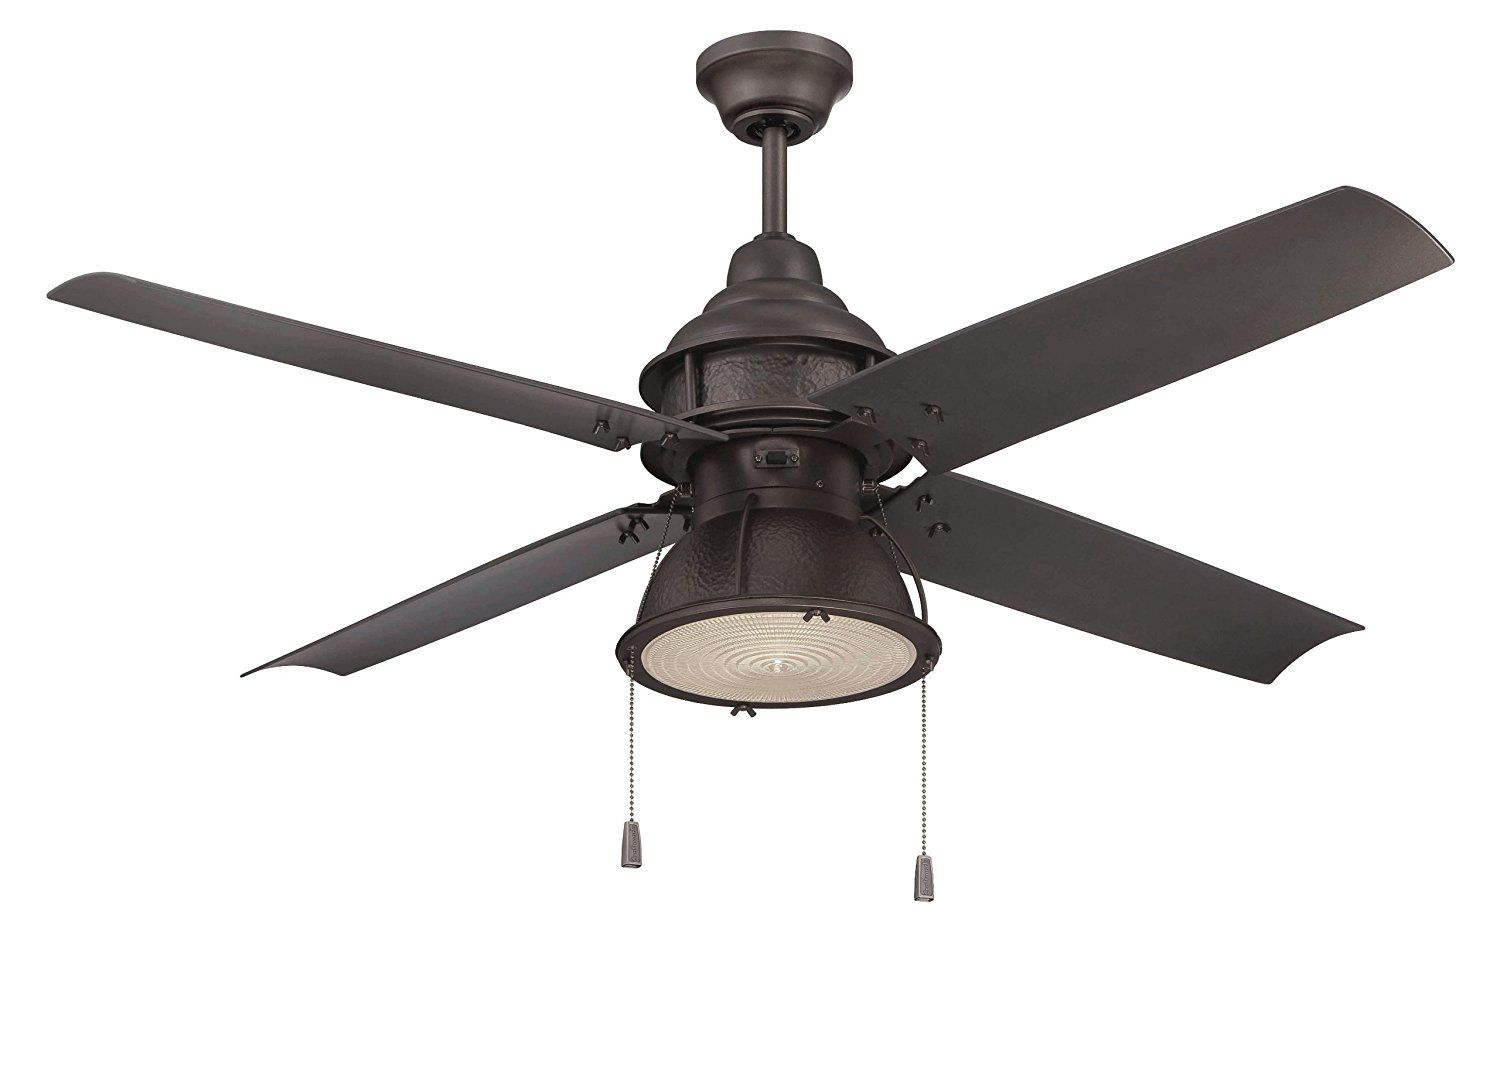 Craftmade Par52esp4 Port Arbor Espresso 52 Inch Outdoor 4 Blade Ceiling Fan With Light